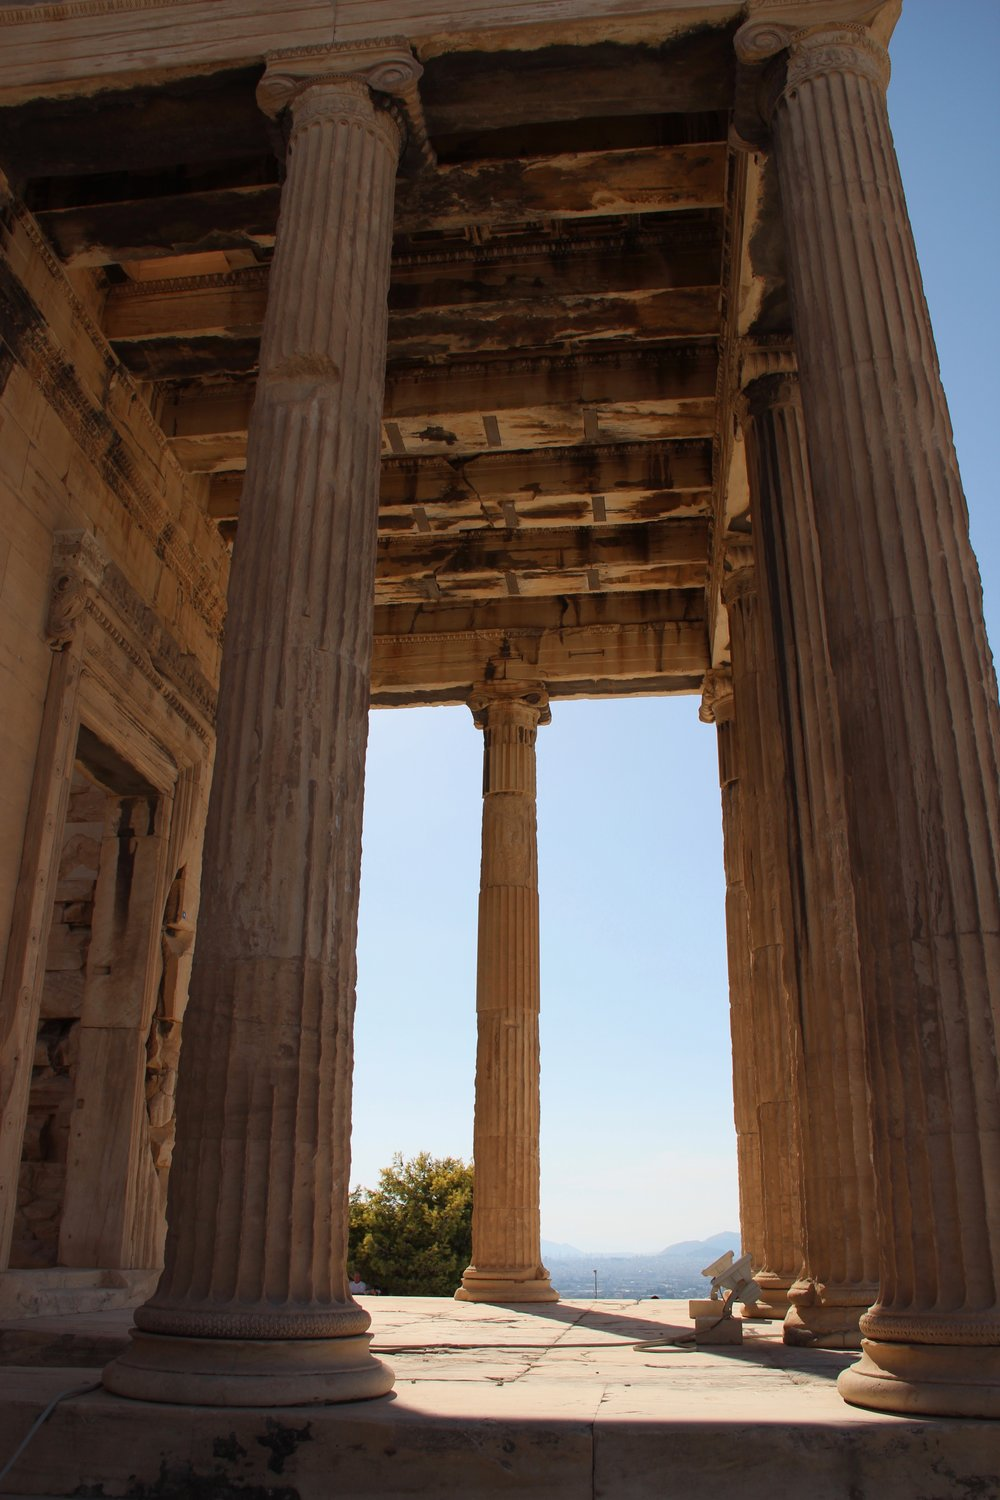 The Acropolis is everything you've been led to believe, and more